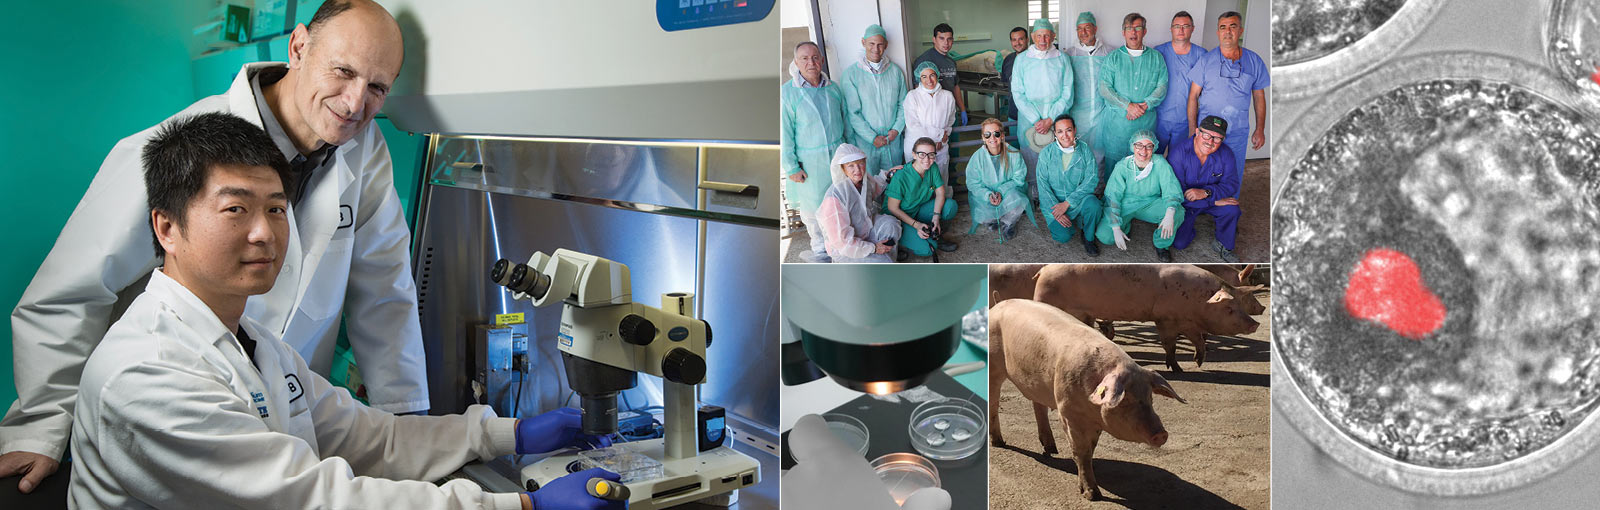 From left: Salk researchers Juan Carlos Izpisua Belmonte and Jun Wu; team of scientists at Agropor field laboratory, Spain; Human stem cells being inserted into a pig blastocyst; pigs at Agropor facility; another angle of stem cell insertion.